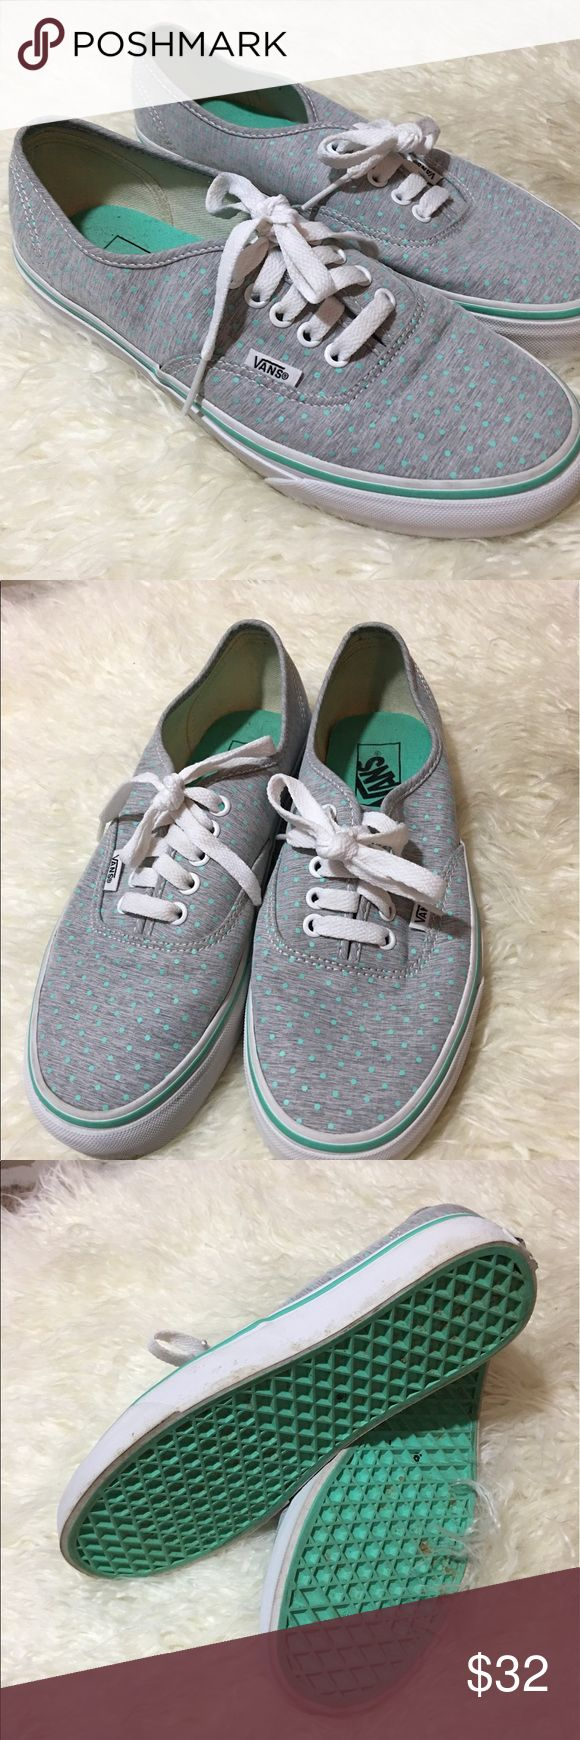 Women's Vans Skate Shoes Sz 8.5 Mint Green Gray Polka Dot Skate Shoes Vans Shoes Sneakers